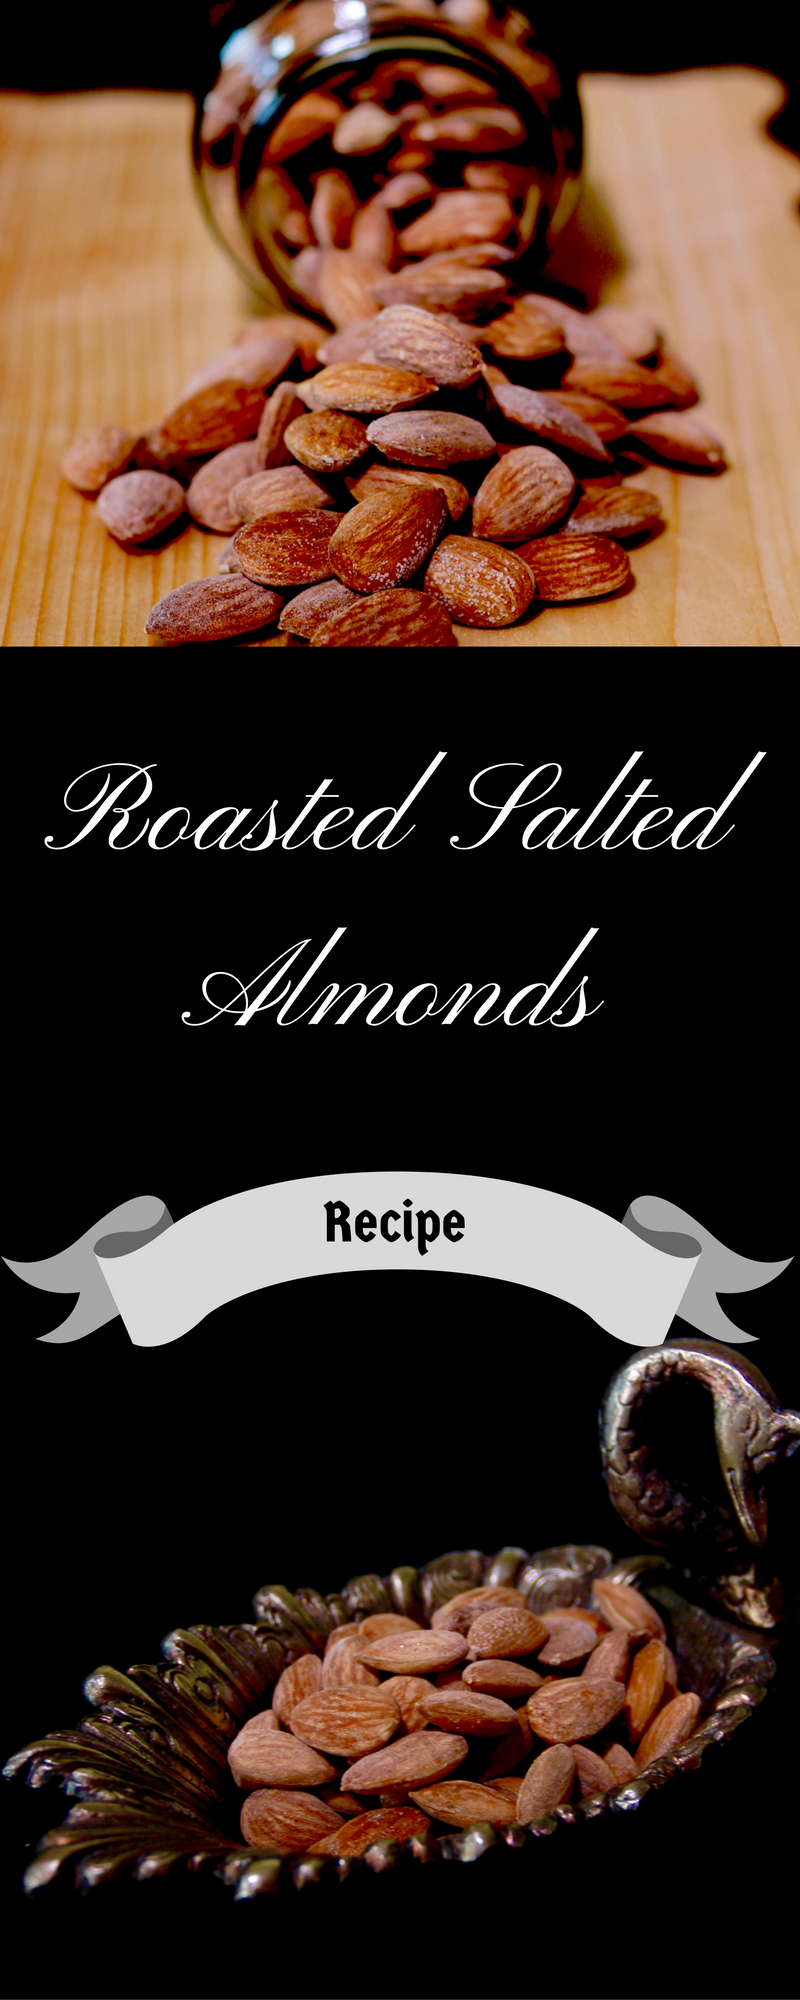 Maple Roasted Salted Almonds {Vegan, GF} - Vibrant Plate